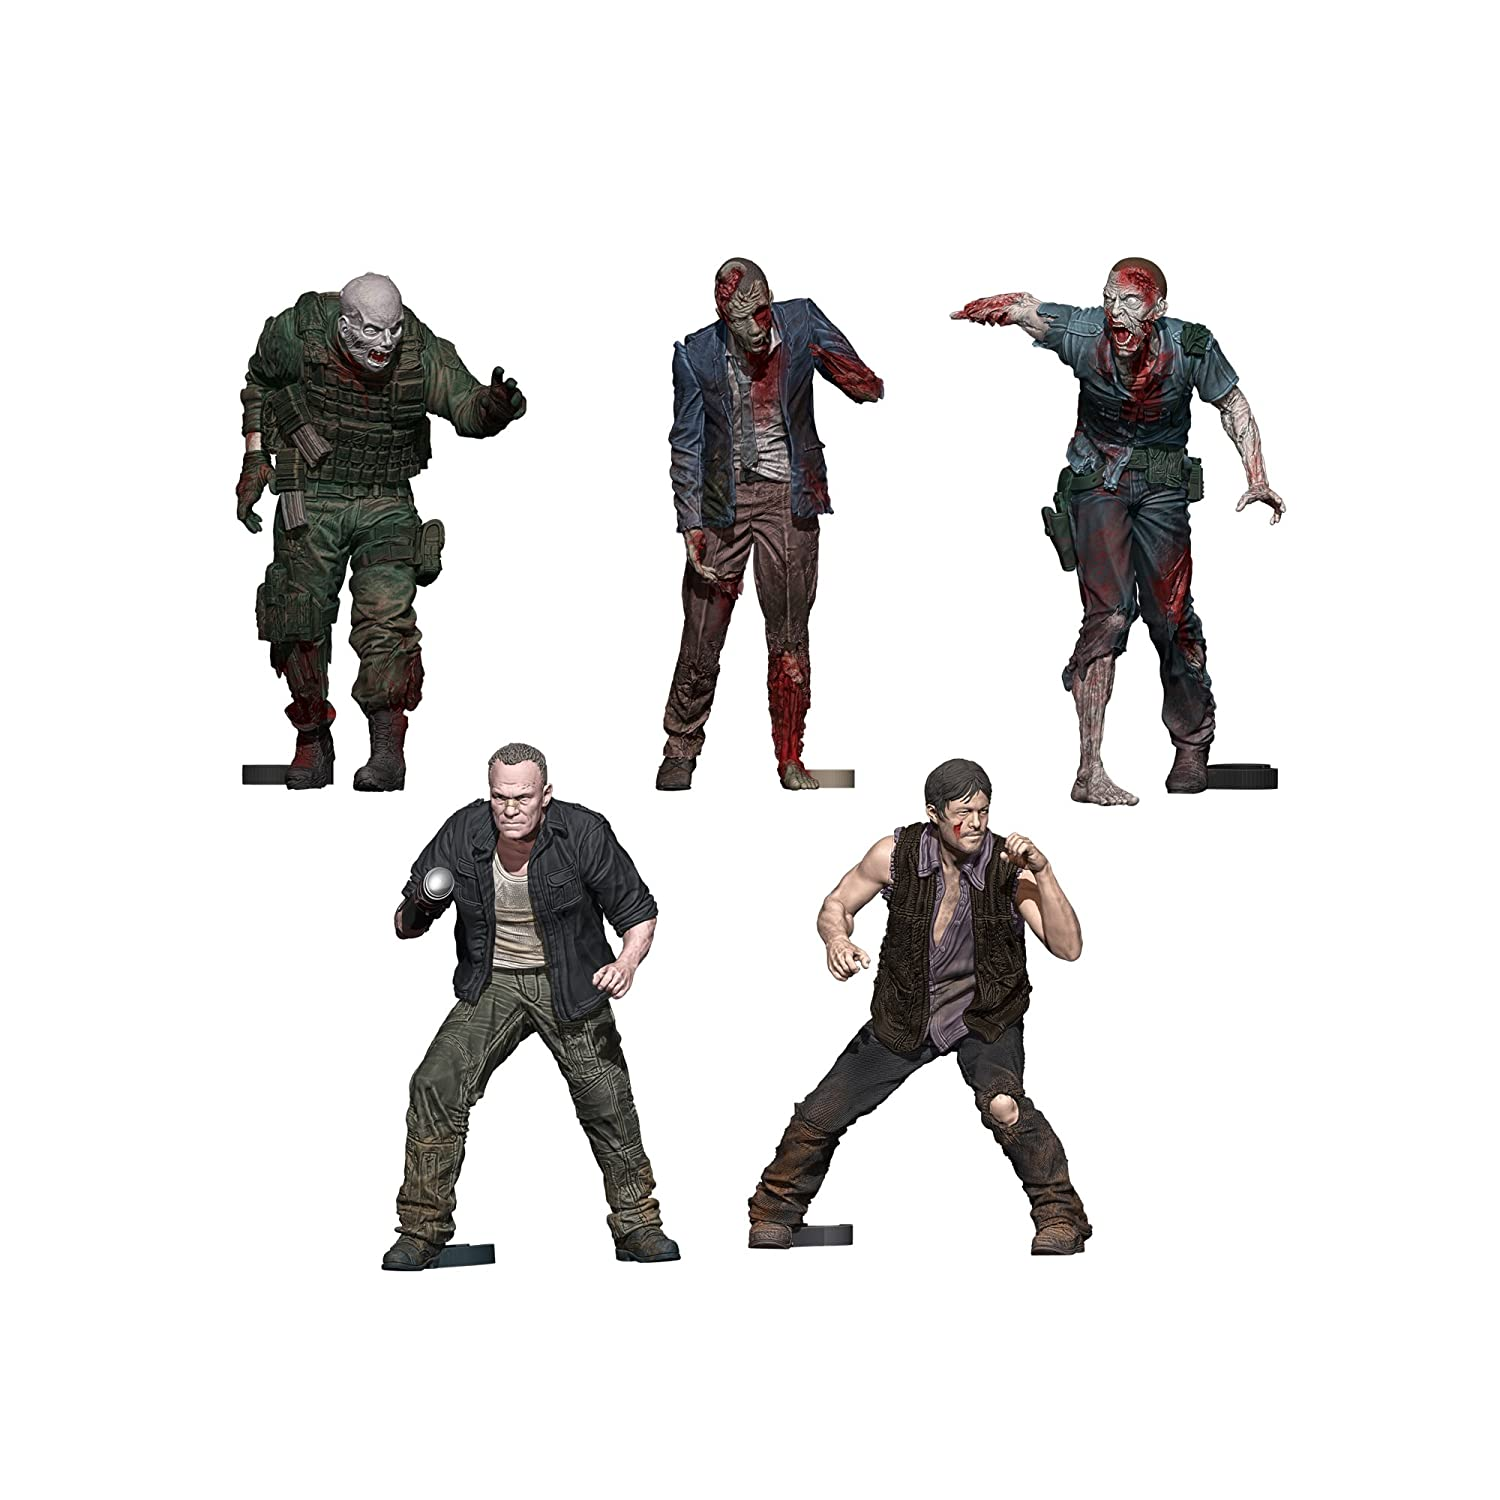 McFarlane Toys Construction Sets, The Walking Dead TV Merle & Daryl Woodbury Arena Pack Action Figure